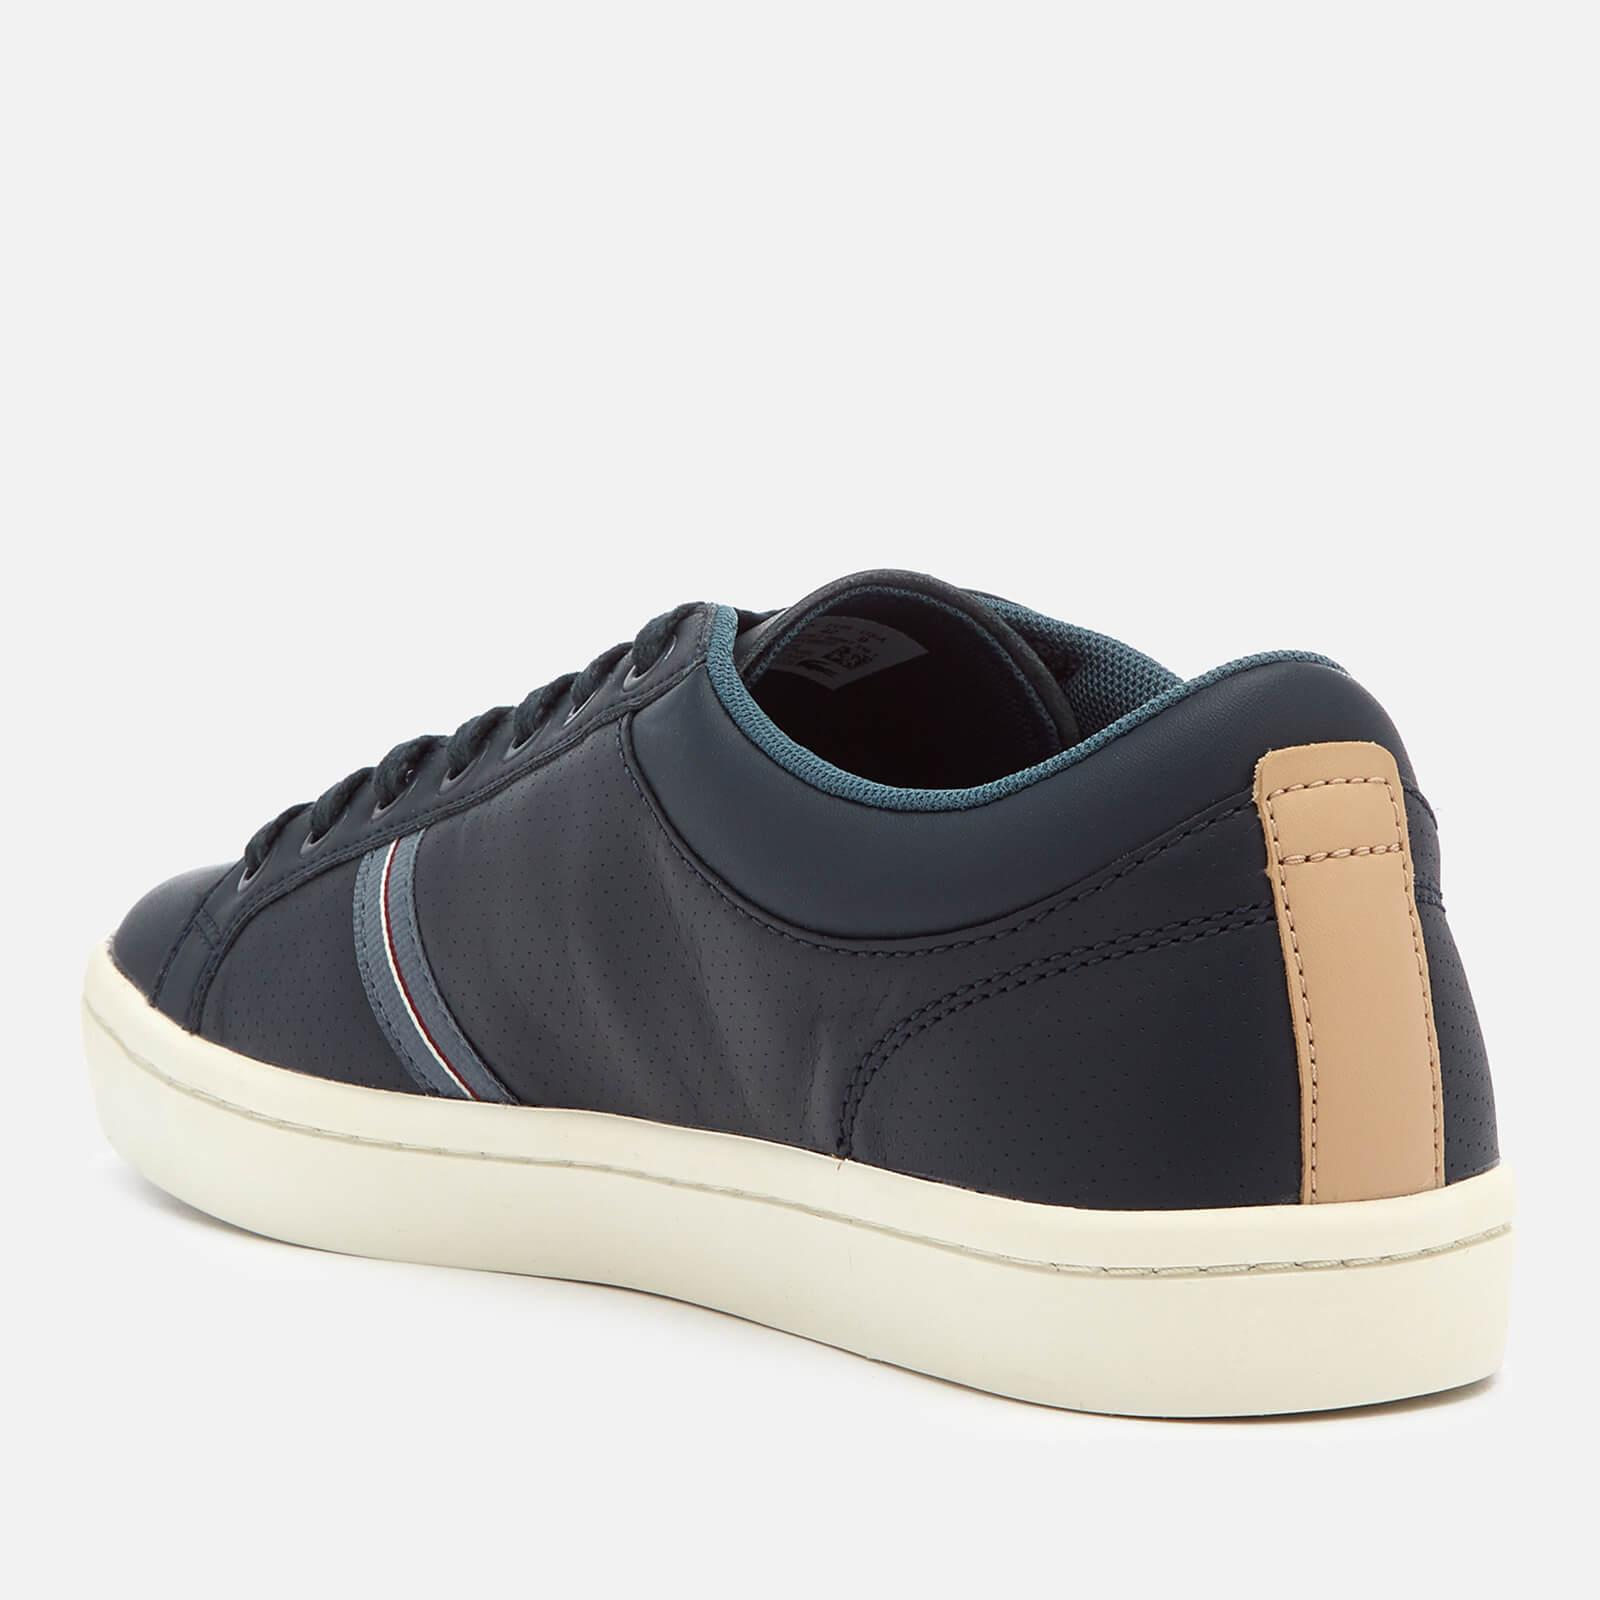 Lacoste Straightset Sport 318 1 Leather